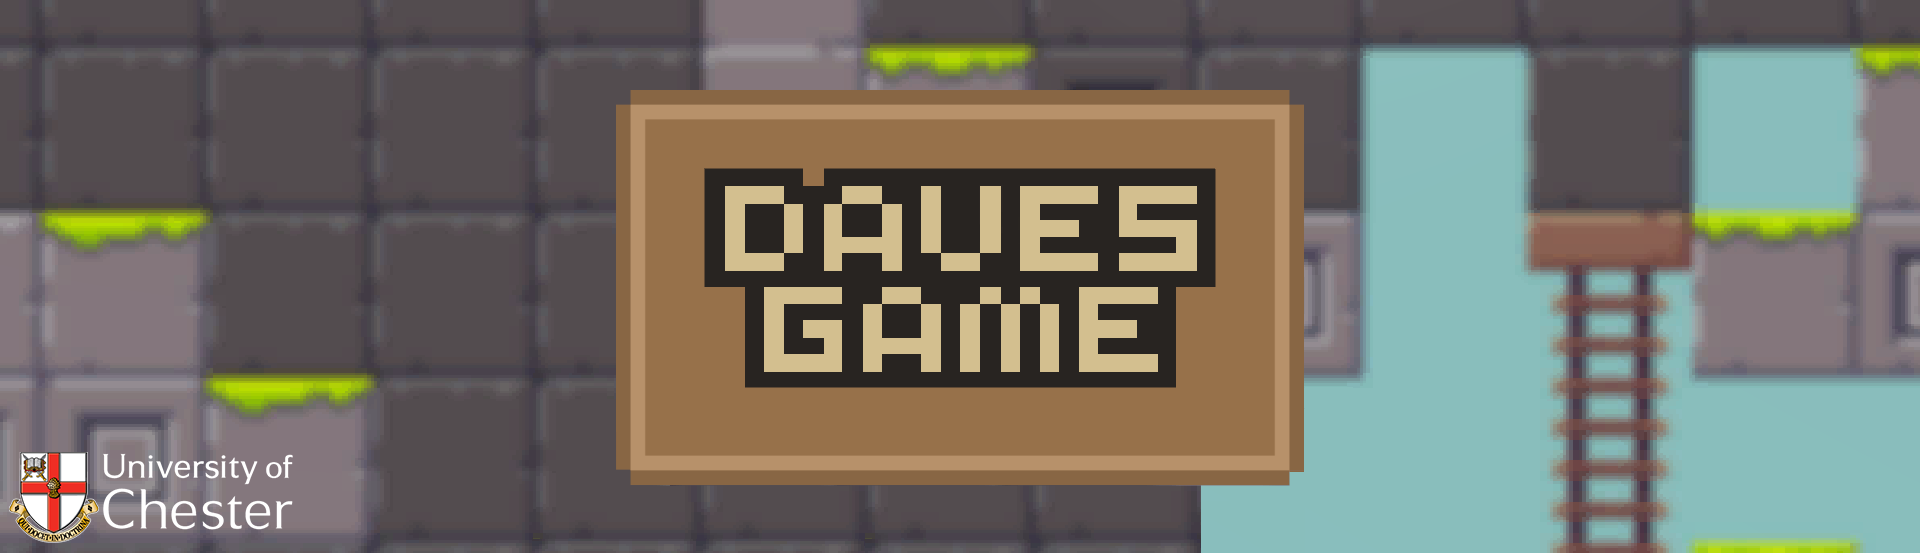 Dave's Game